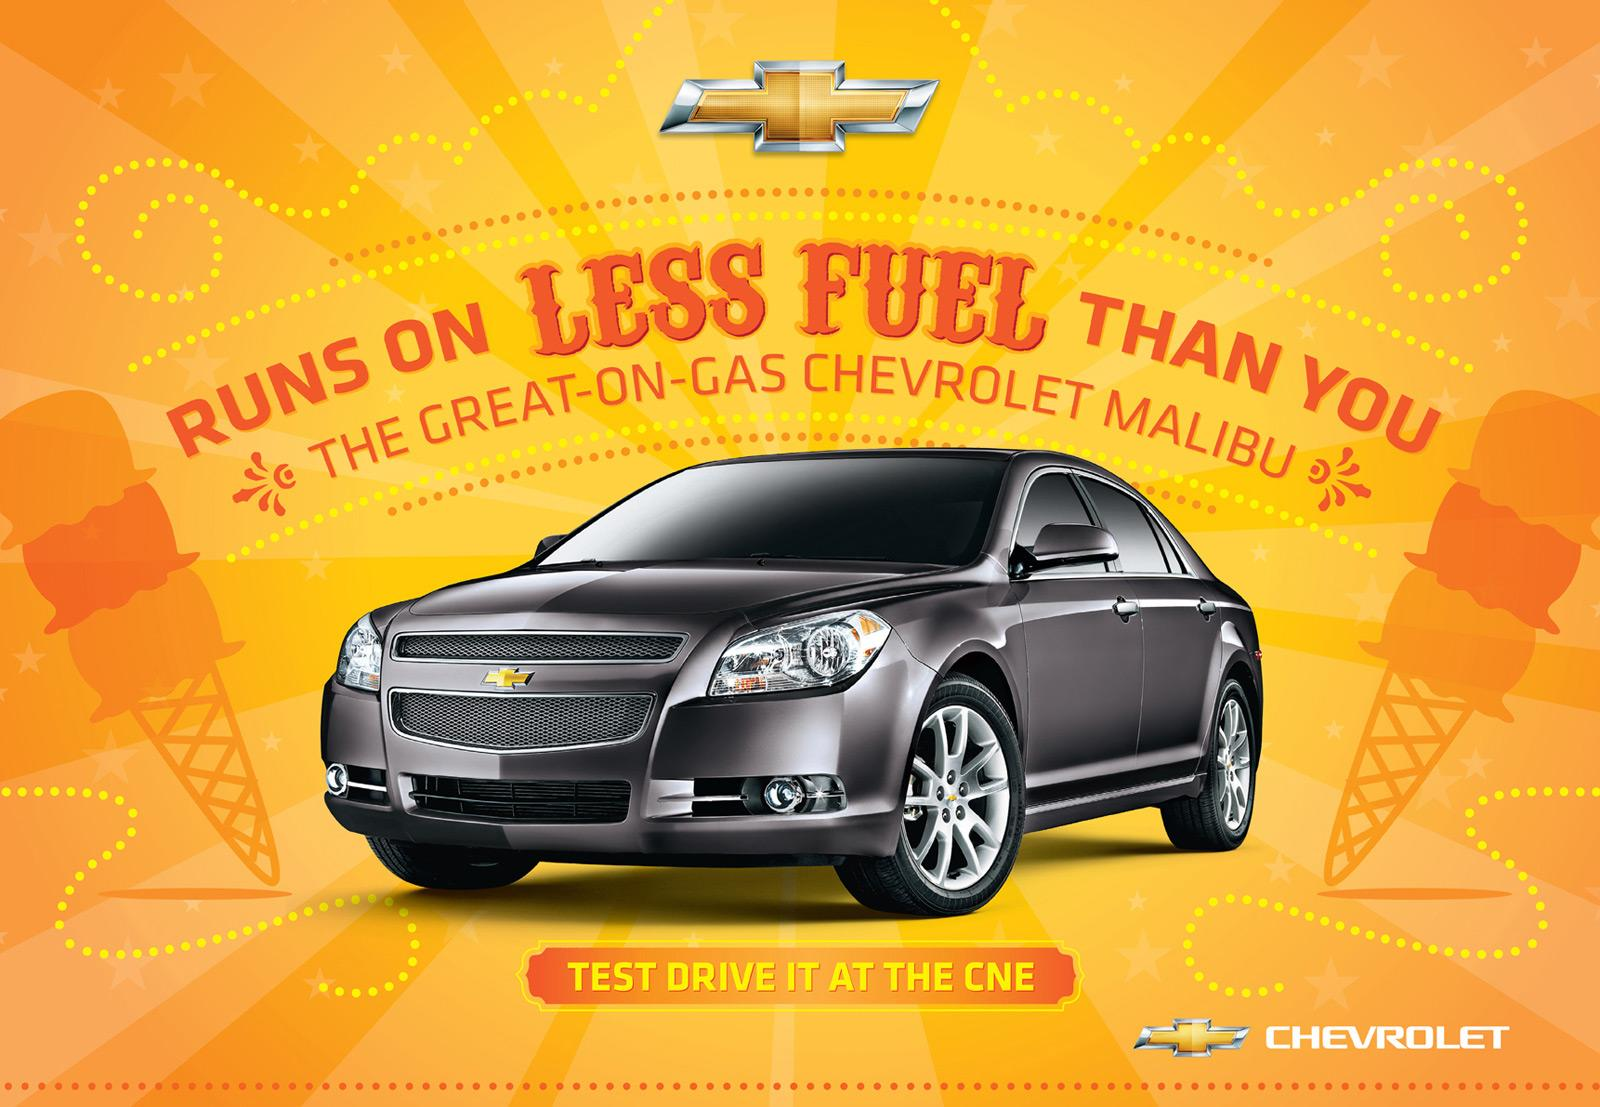 Chevrolet Outdoor Ad -  Less Fuel